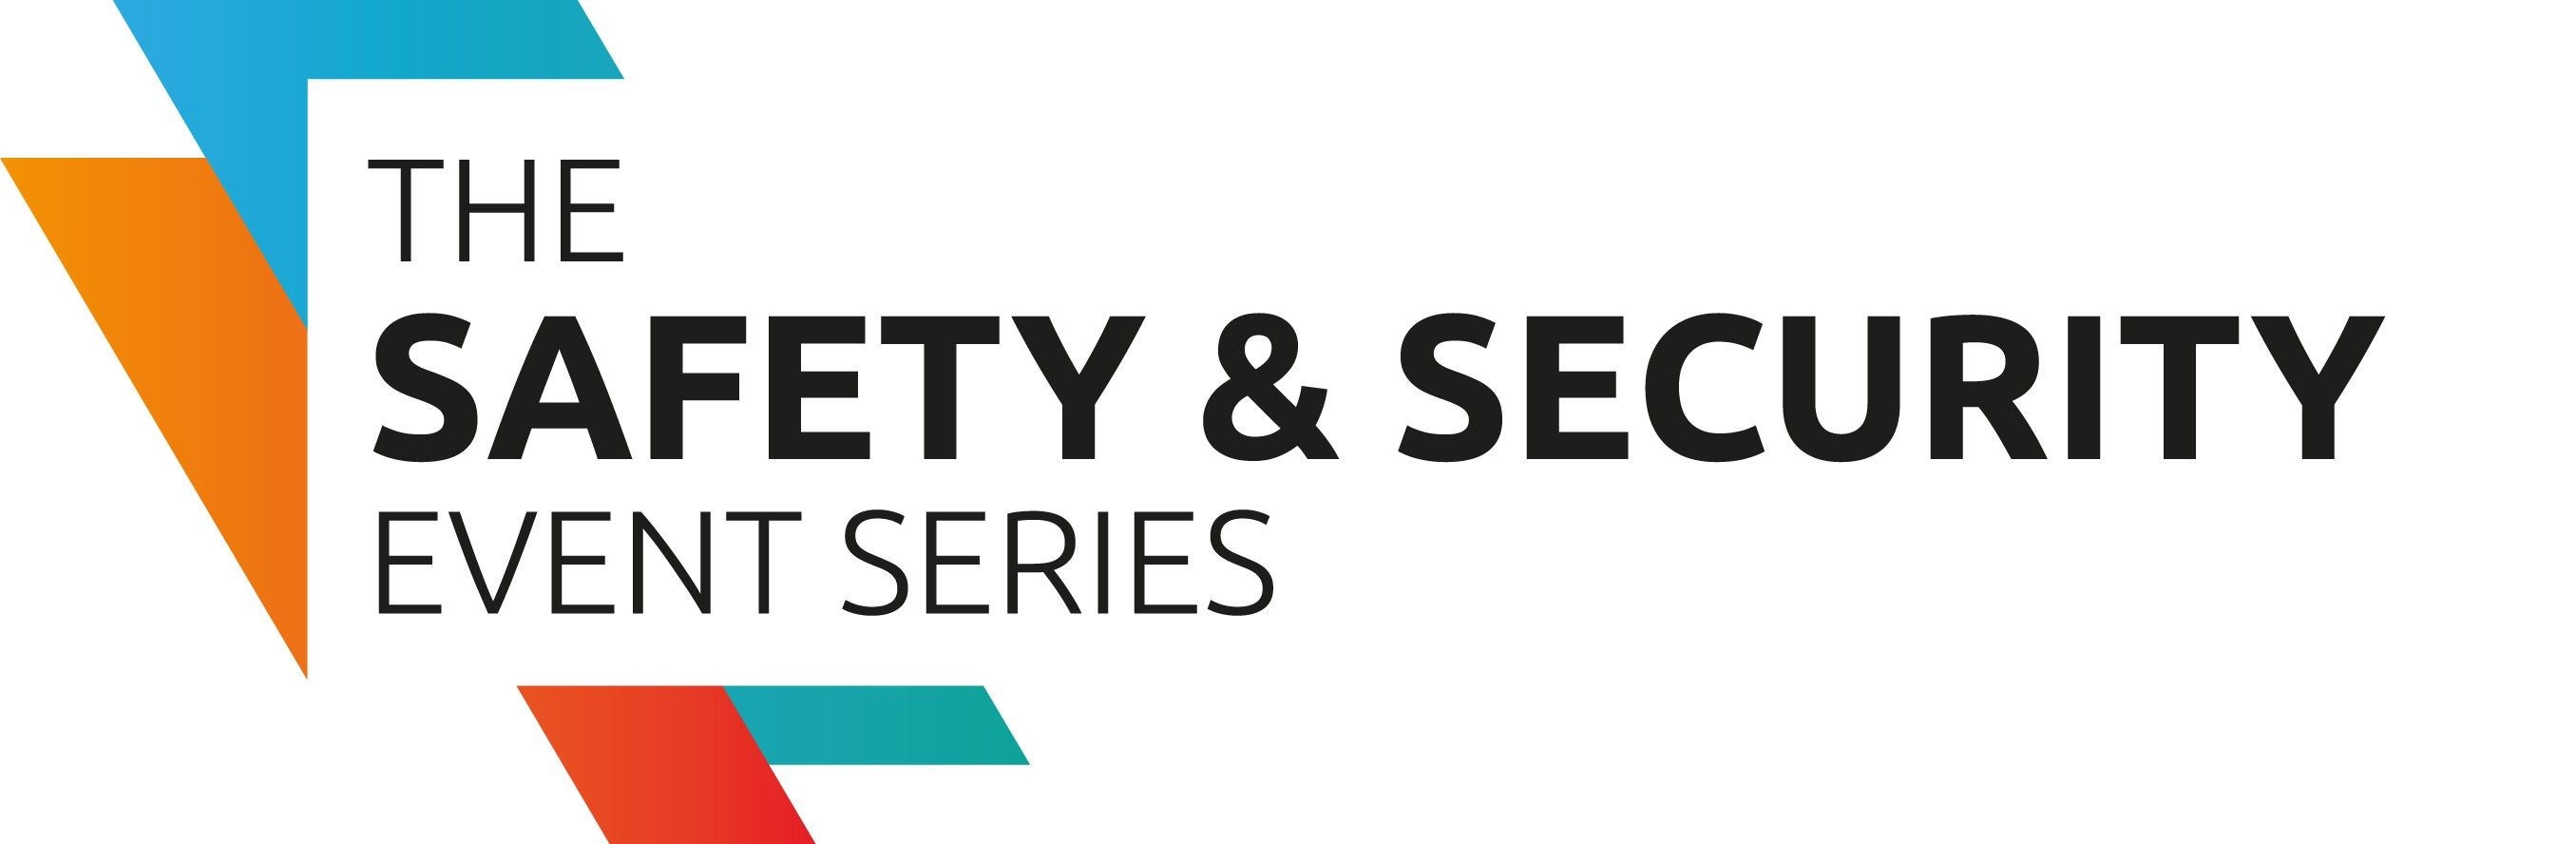 The Safety & Security Event Series